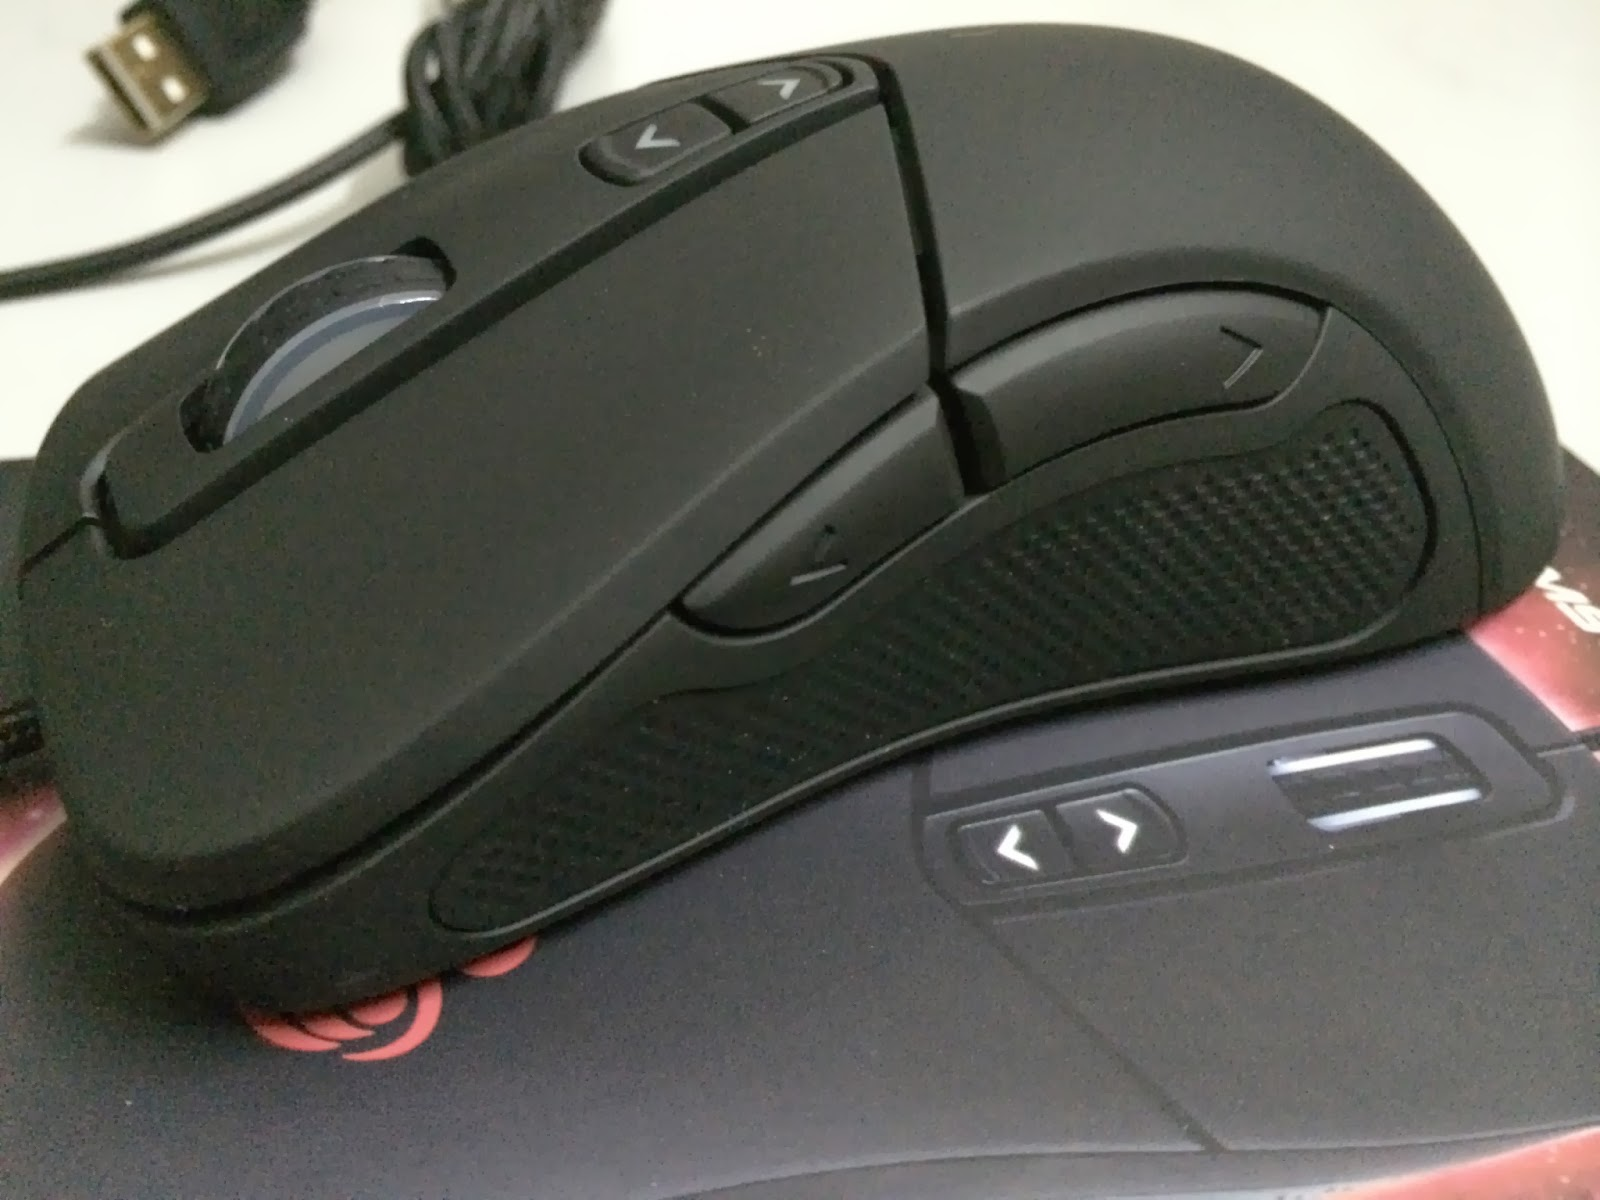 A Sneak Preview On The CM Storm Mizar Laser Gaming Mice 8